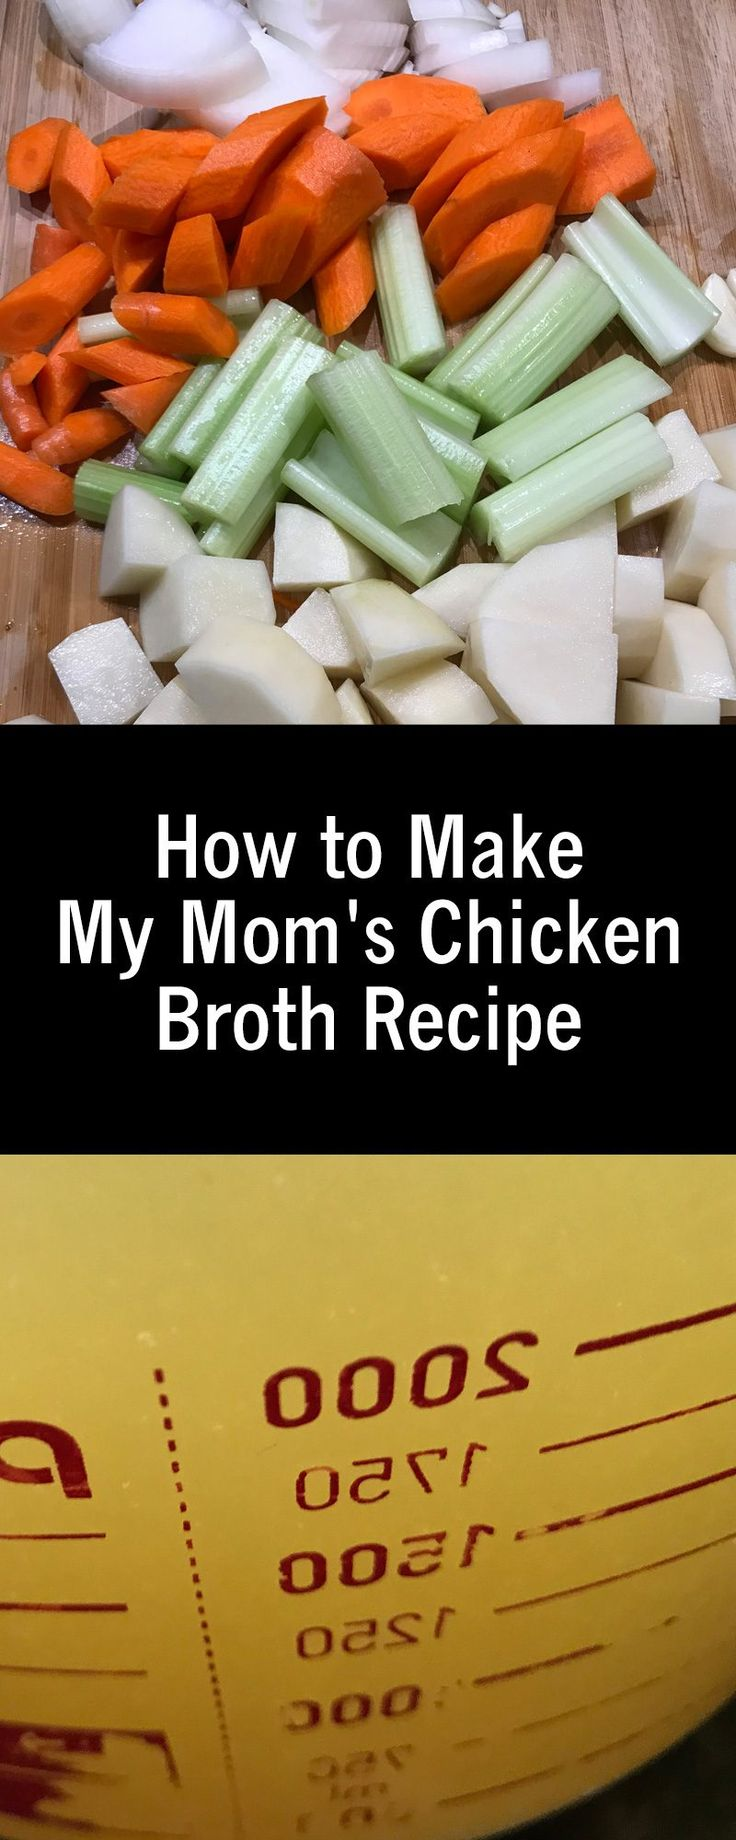 How to Make My Mom's Chicken Broth Recipe - easy recipe for those cold winter weeknight meals. It makes three meals in one. Check out how.